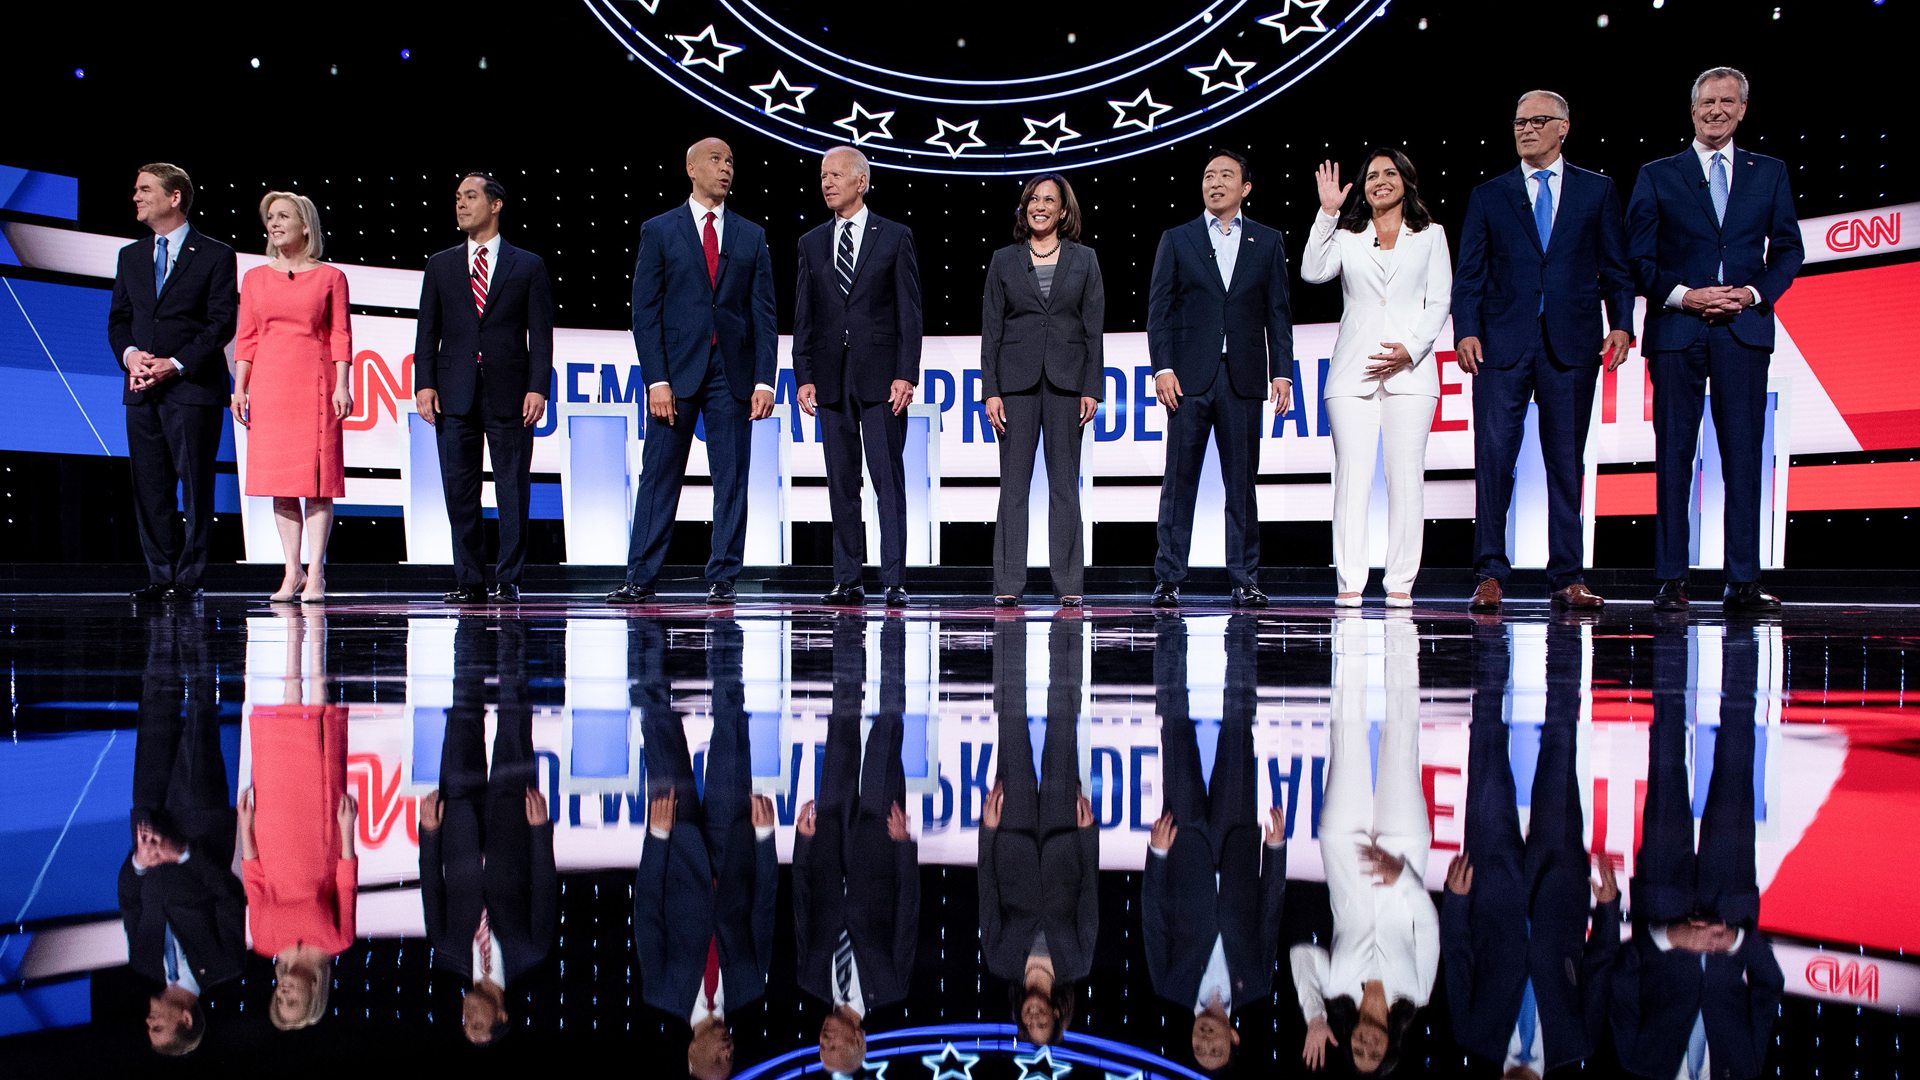 From left: Democratic presidential hopefuls Sen. Michael Sen. Kirsten Gillibrand of New York, former U.S. Secretary of Housing and Urban Development Julian Castro, Sen. Cory Booker of New Jersey, former Vice President Joe Biden, Sen. Kamala Harris of California, entrepreneur Andrew Yang, Rep. Tulsi Gabbard of Hawaii's 2nd District, Washington Gov. Jay Inslee and New York City Mayor Bill de Blasio arrive on stage ahead of the second round of the second Democratic primary debate of the 2020 presidential campaign season hosted by CNN in Detroit on July 31, 2019. (Credit: Brendan Smialowski / AFP / Getty Images)